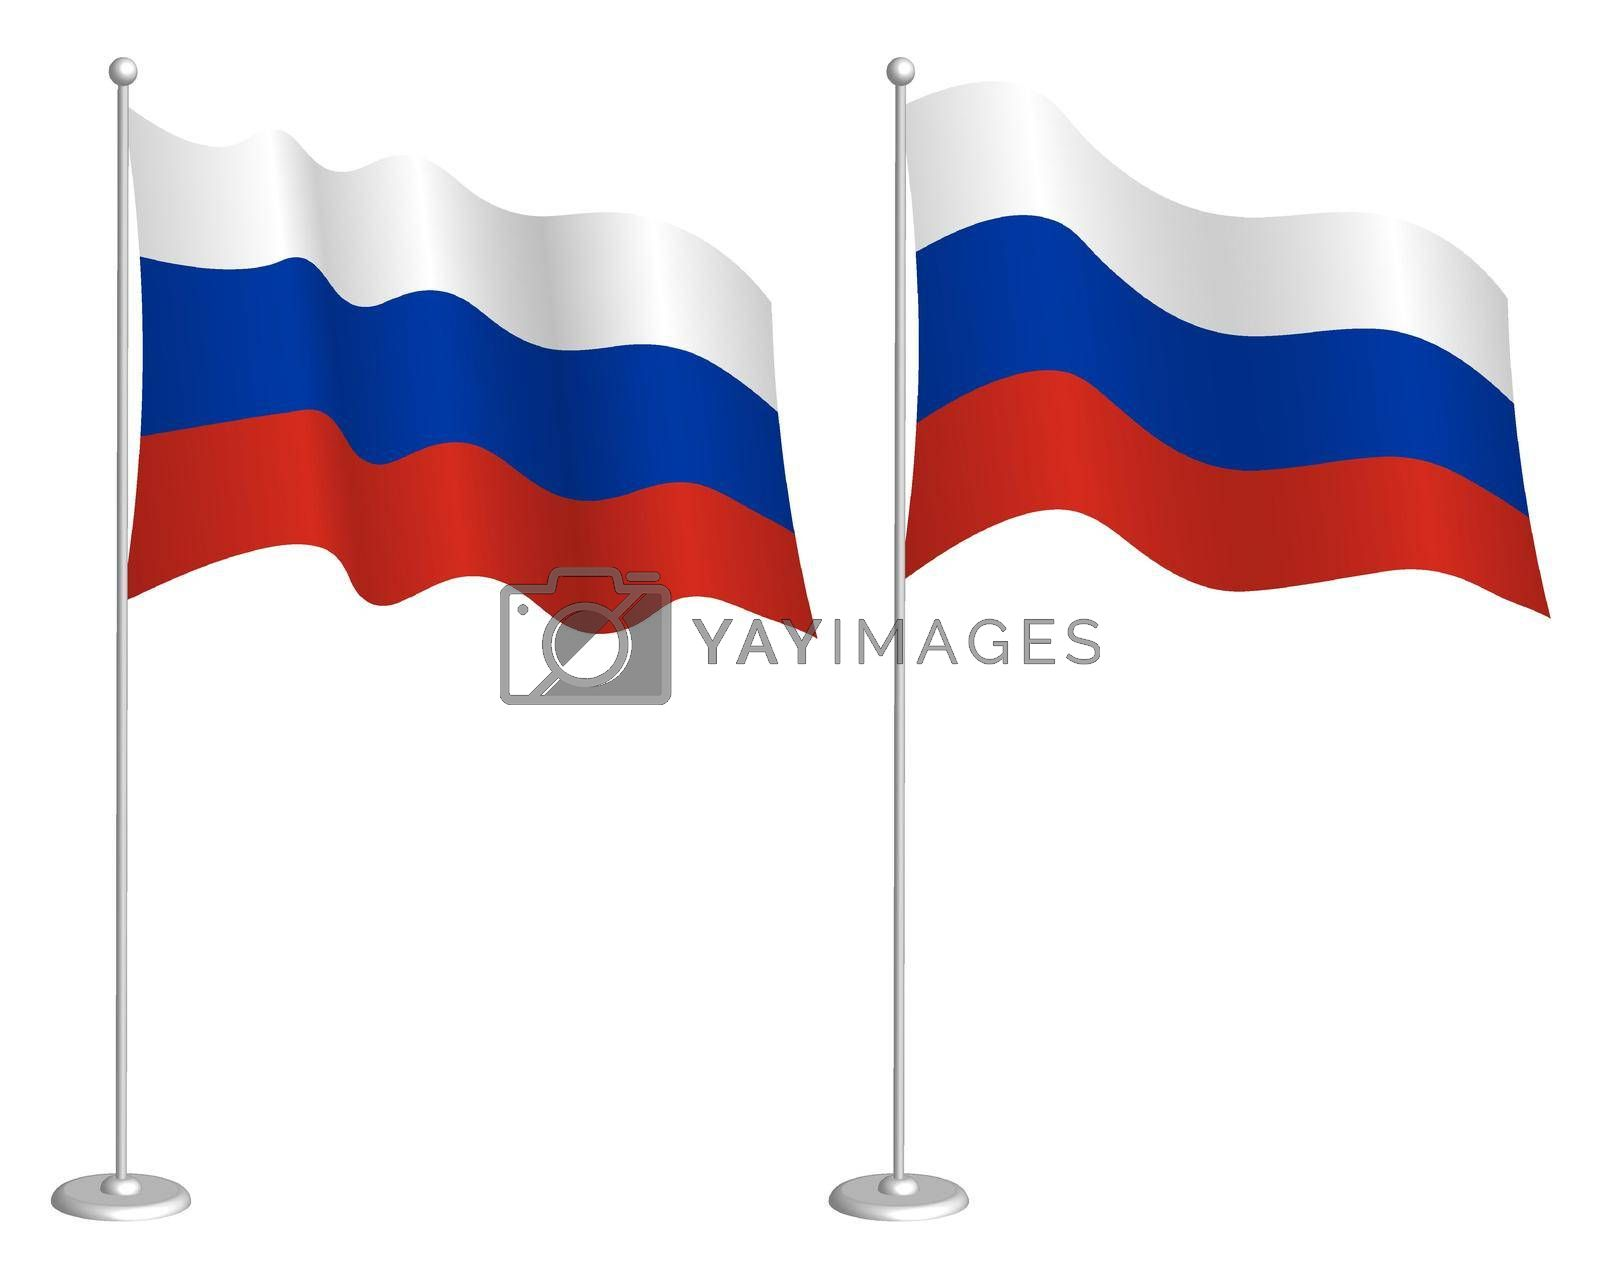 flag of Russia, Russian Federation on flagpole waving in wind. Holiday design element. Checkpoint for map symbols. Isolated vector on white background